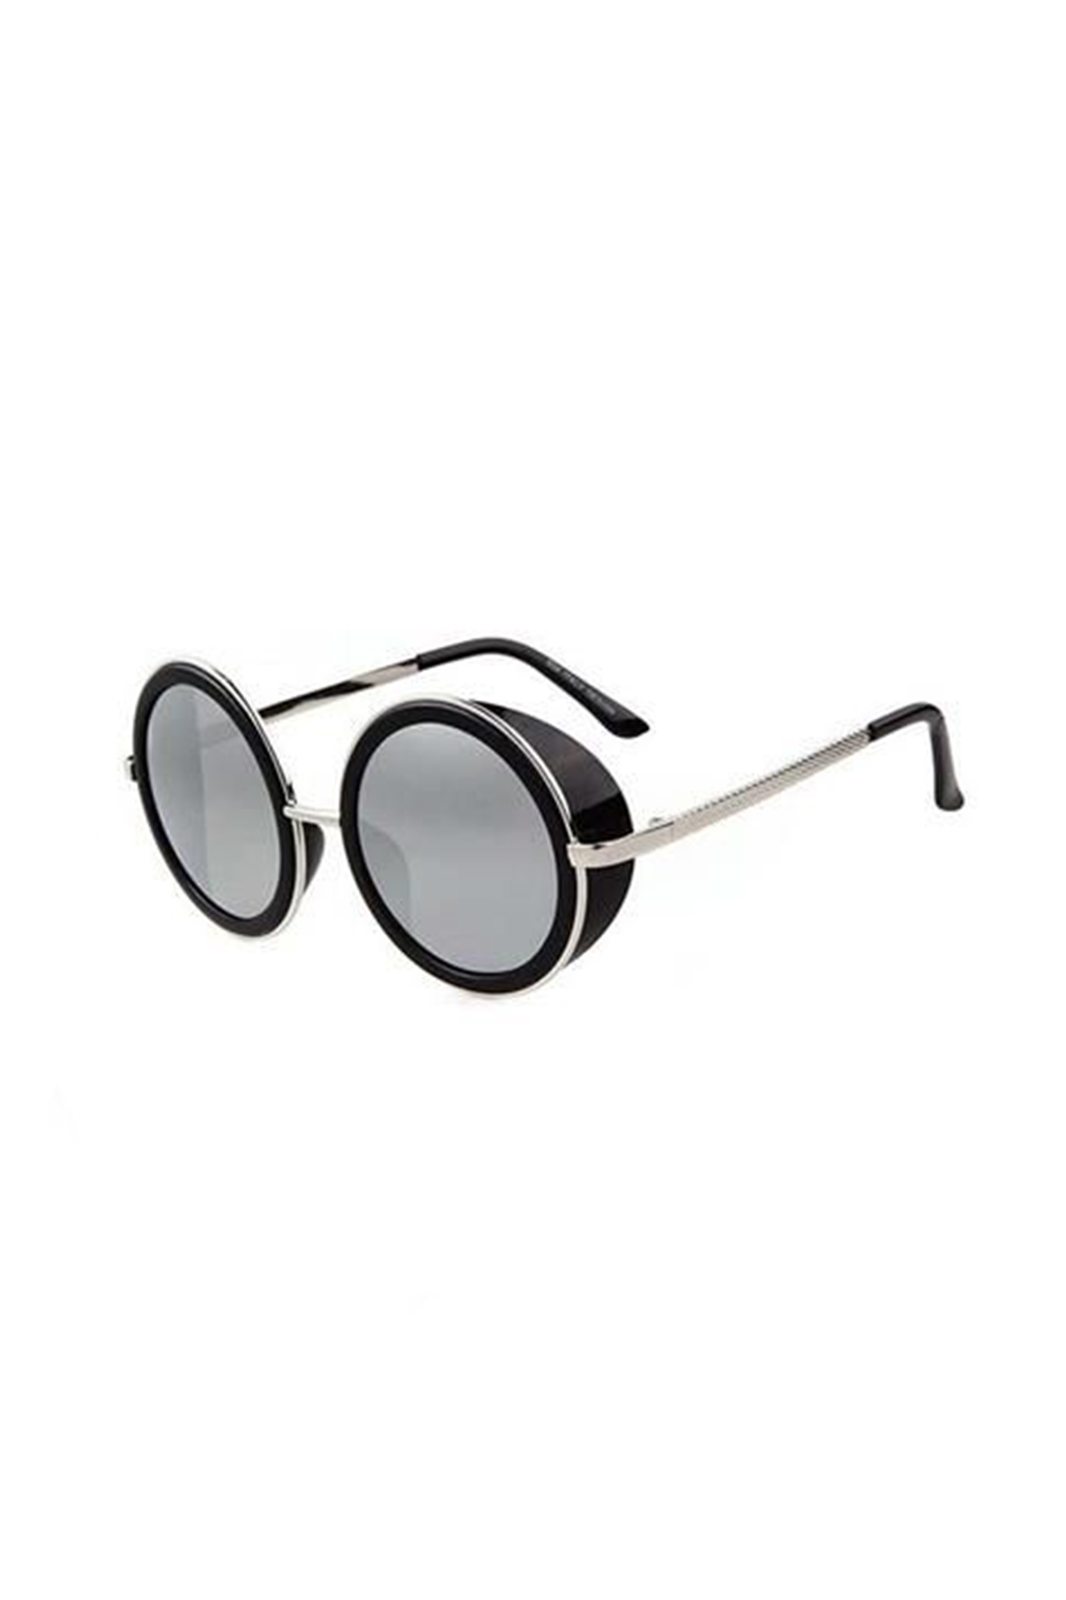 Sunglasses Steam Punk Mirror Lens